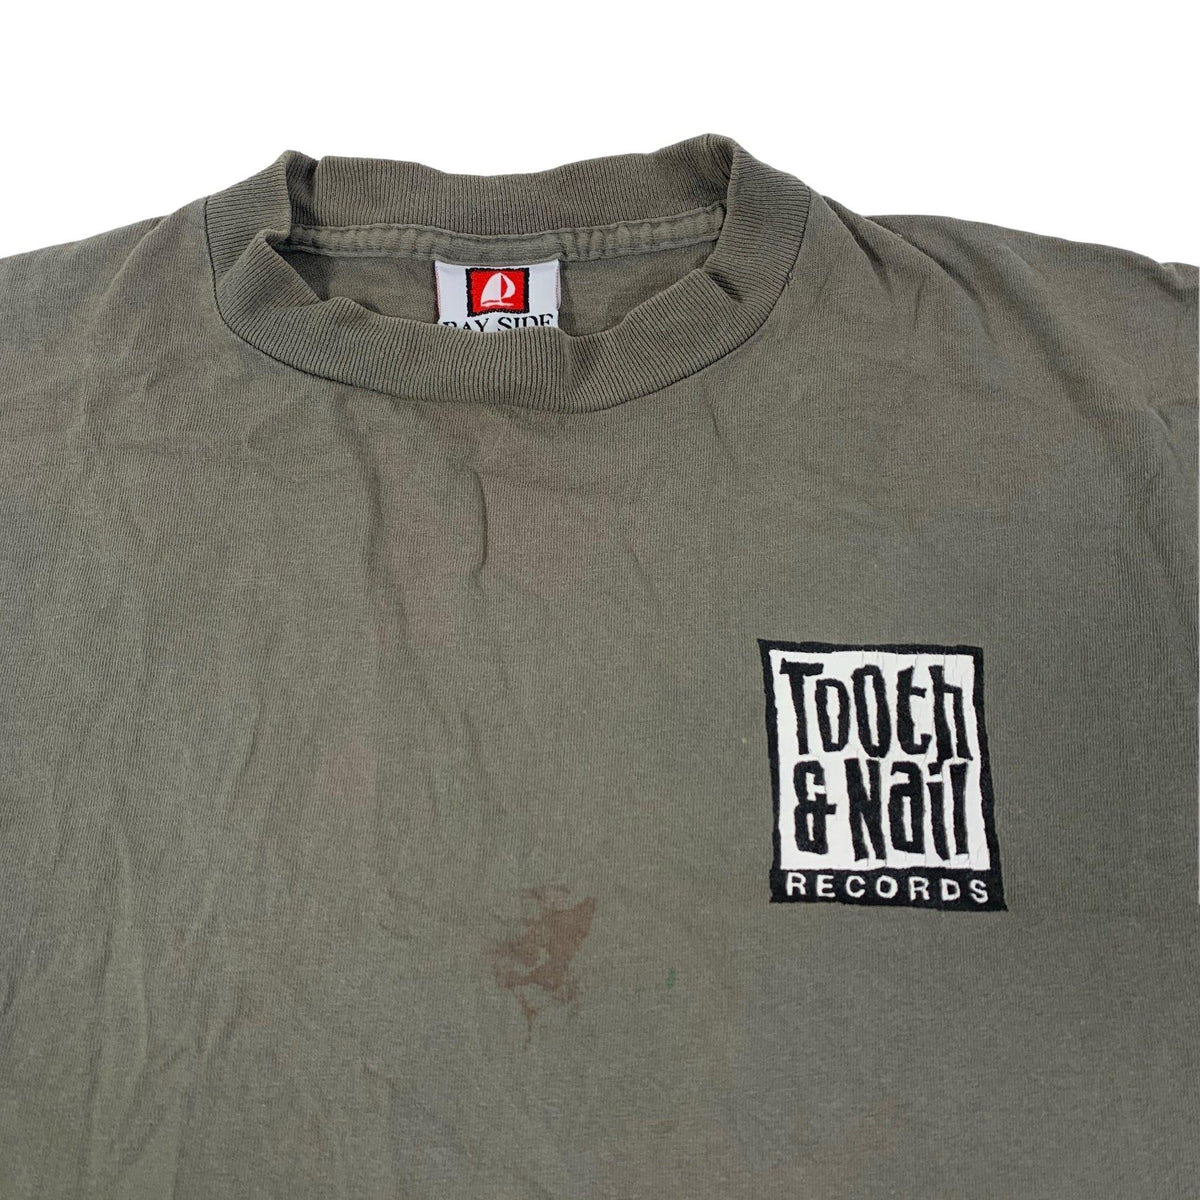 "Vintage Tooth & Nail Records ""Corporate Takeover"" T-Shirt"